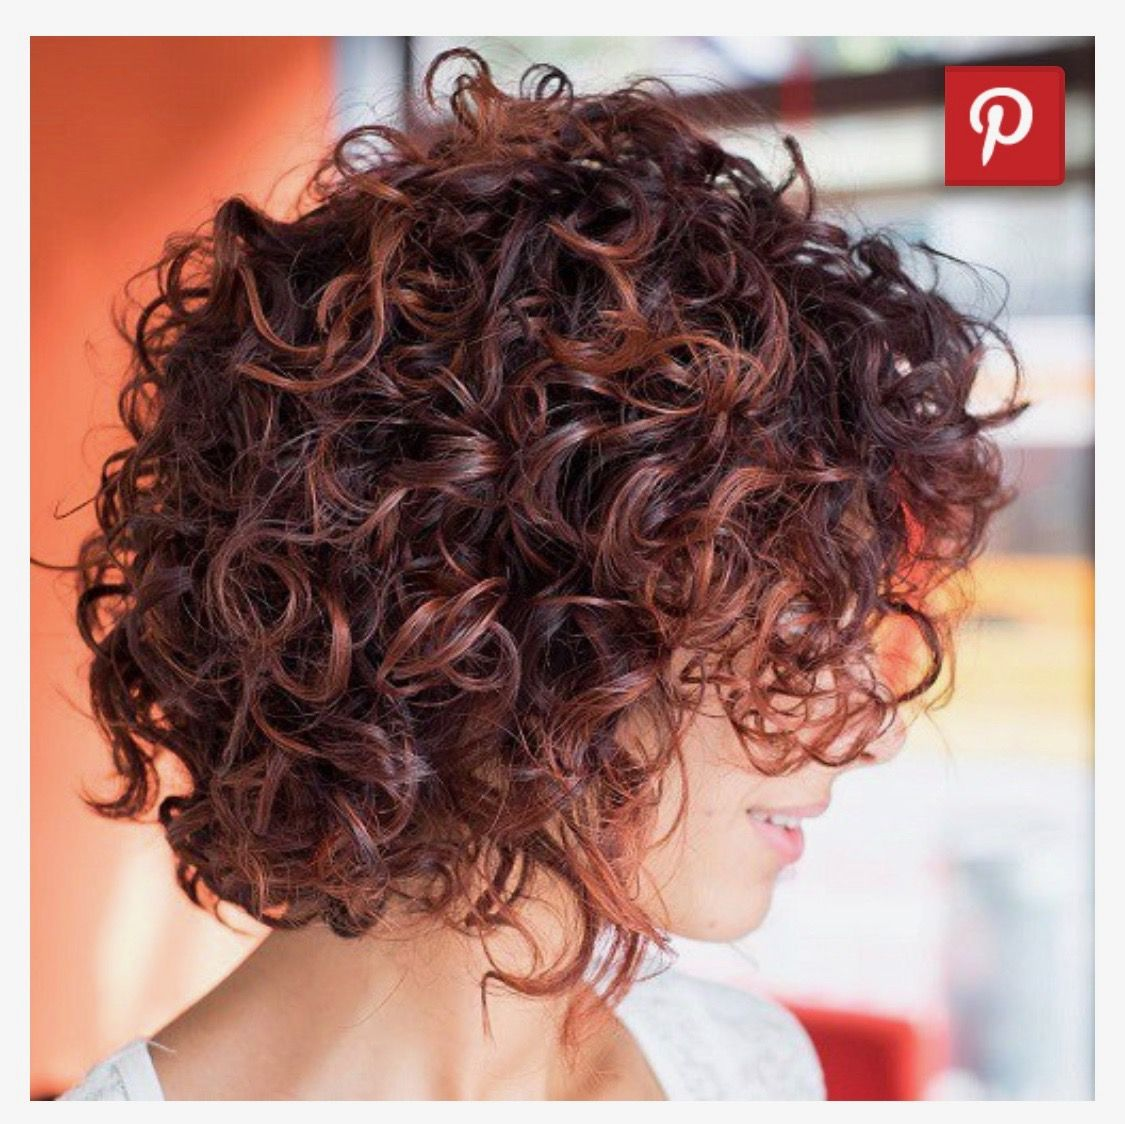 Pin by elia petridou on hair and beauty pinterest curly hair